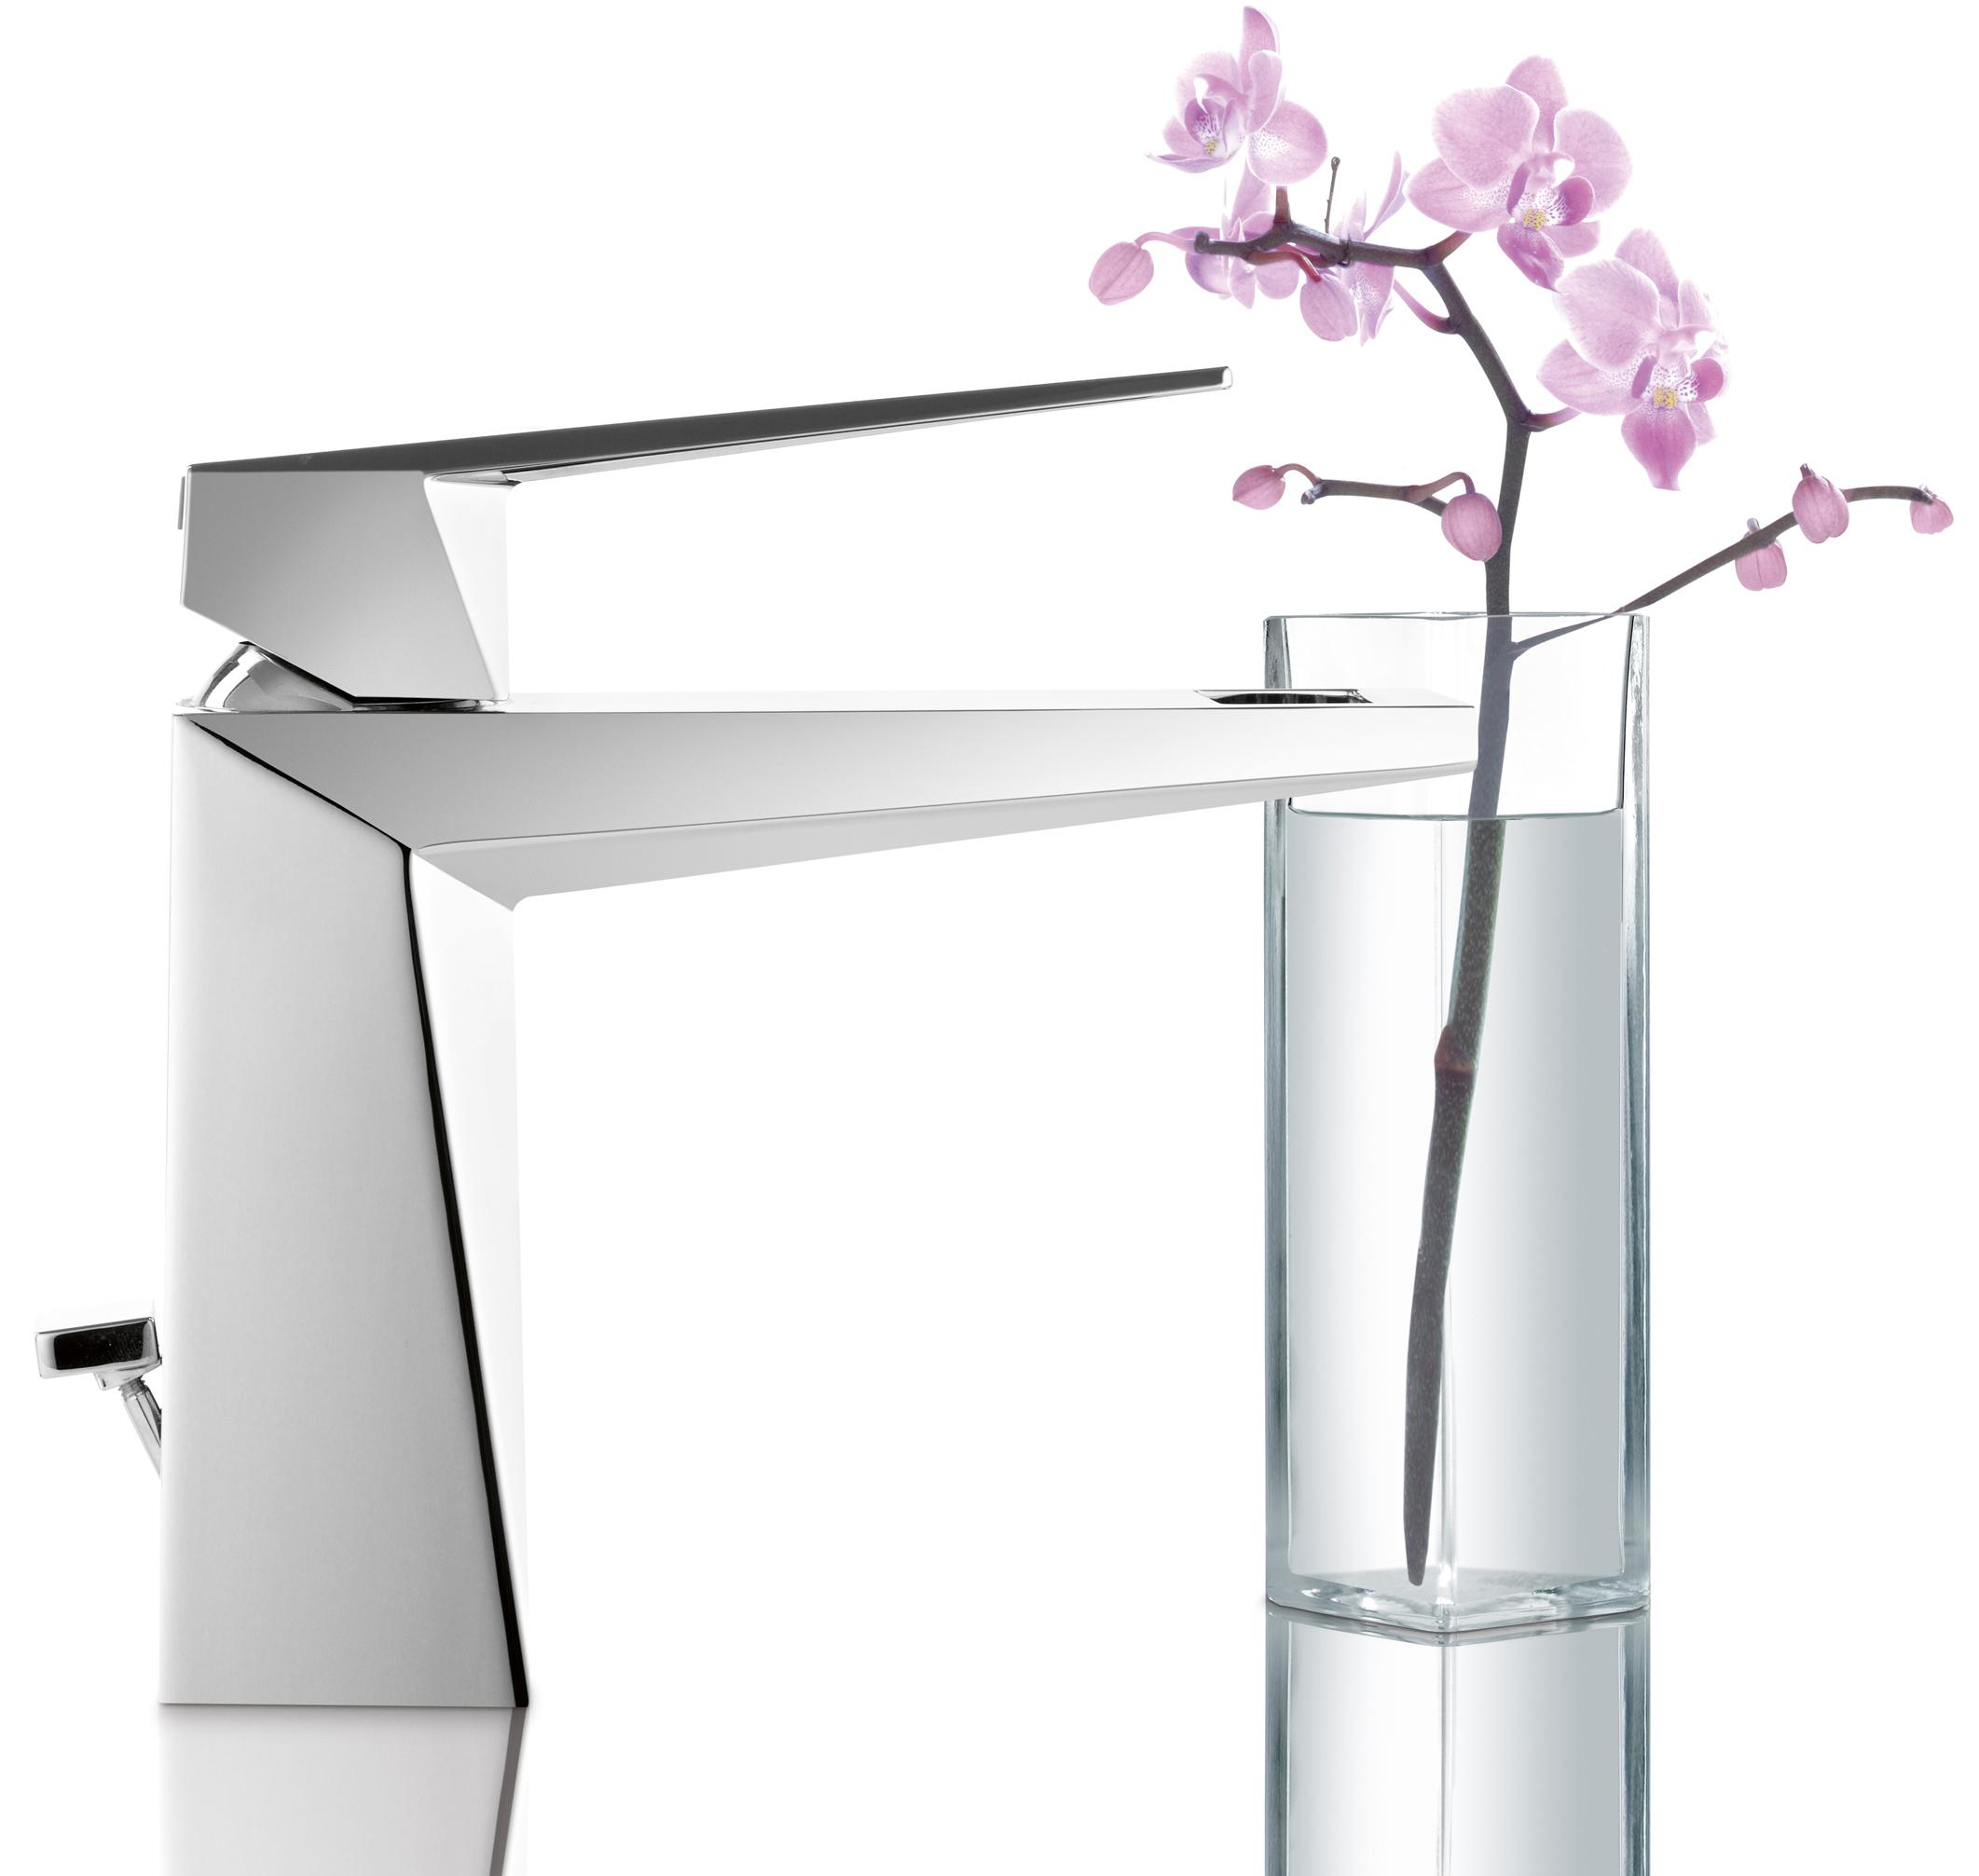 Grohe Allure Bathroom Faucet: Grohe 23034000 Allure Brilliant Single-handle Bathroom